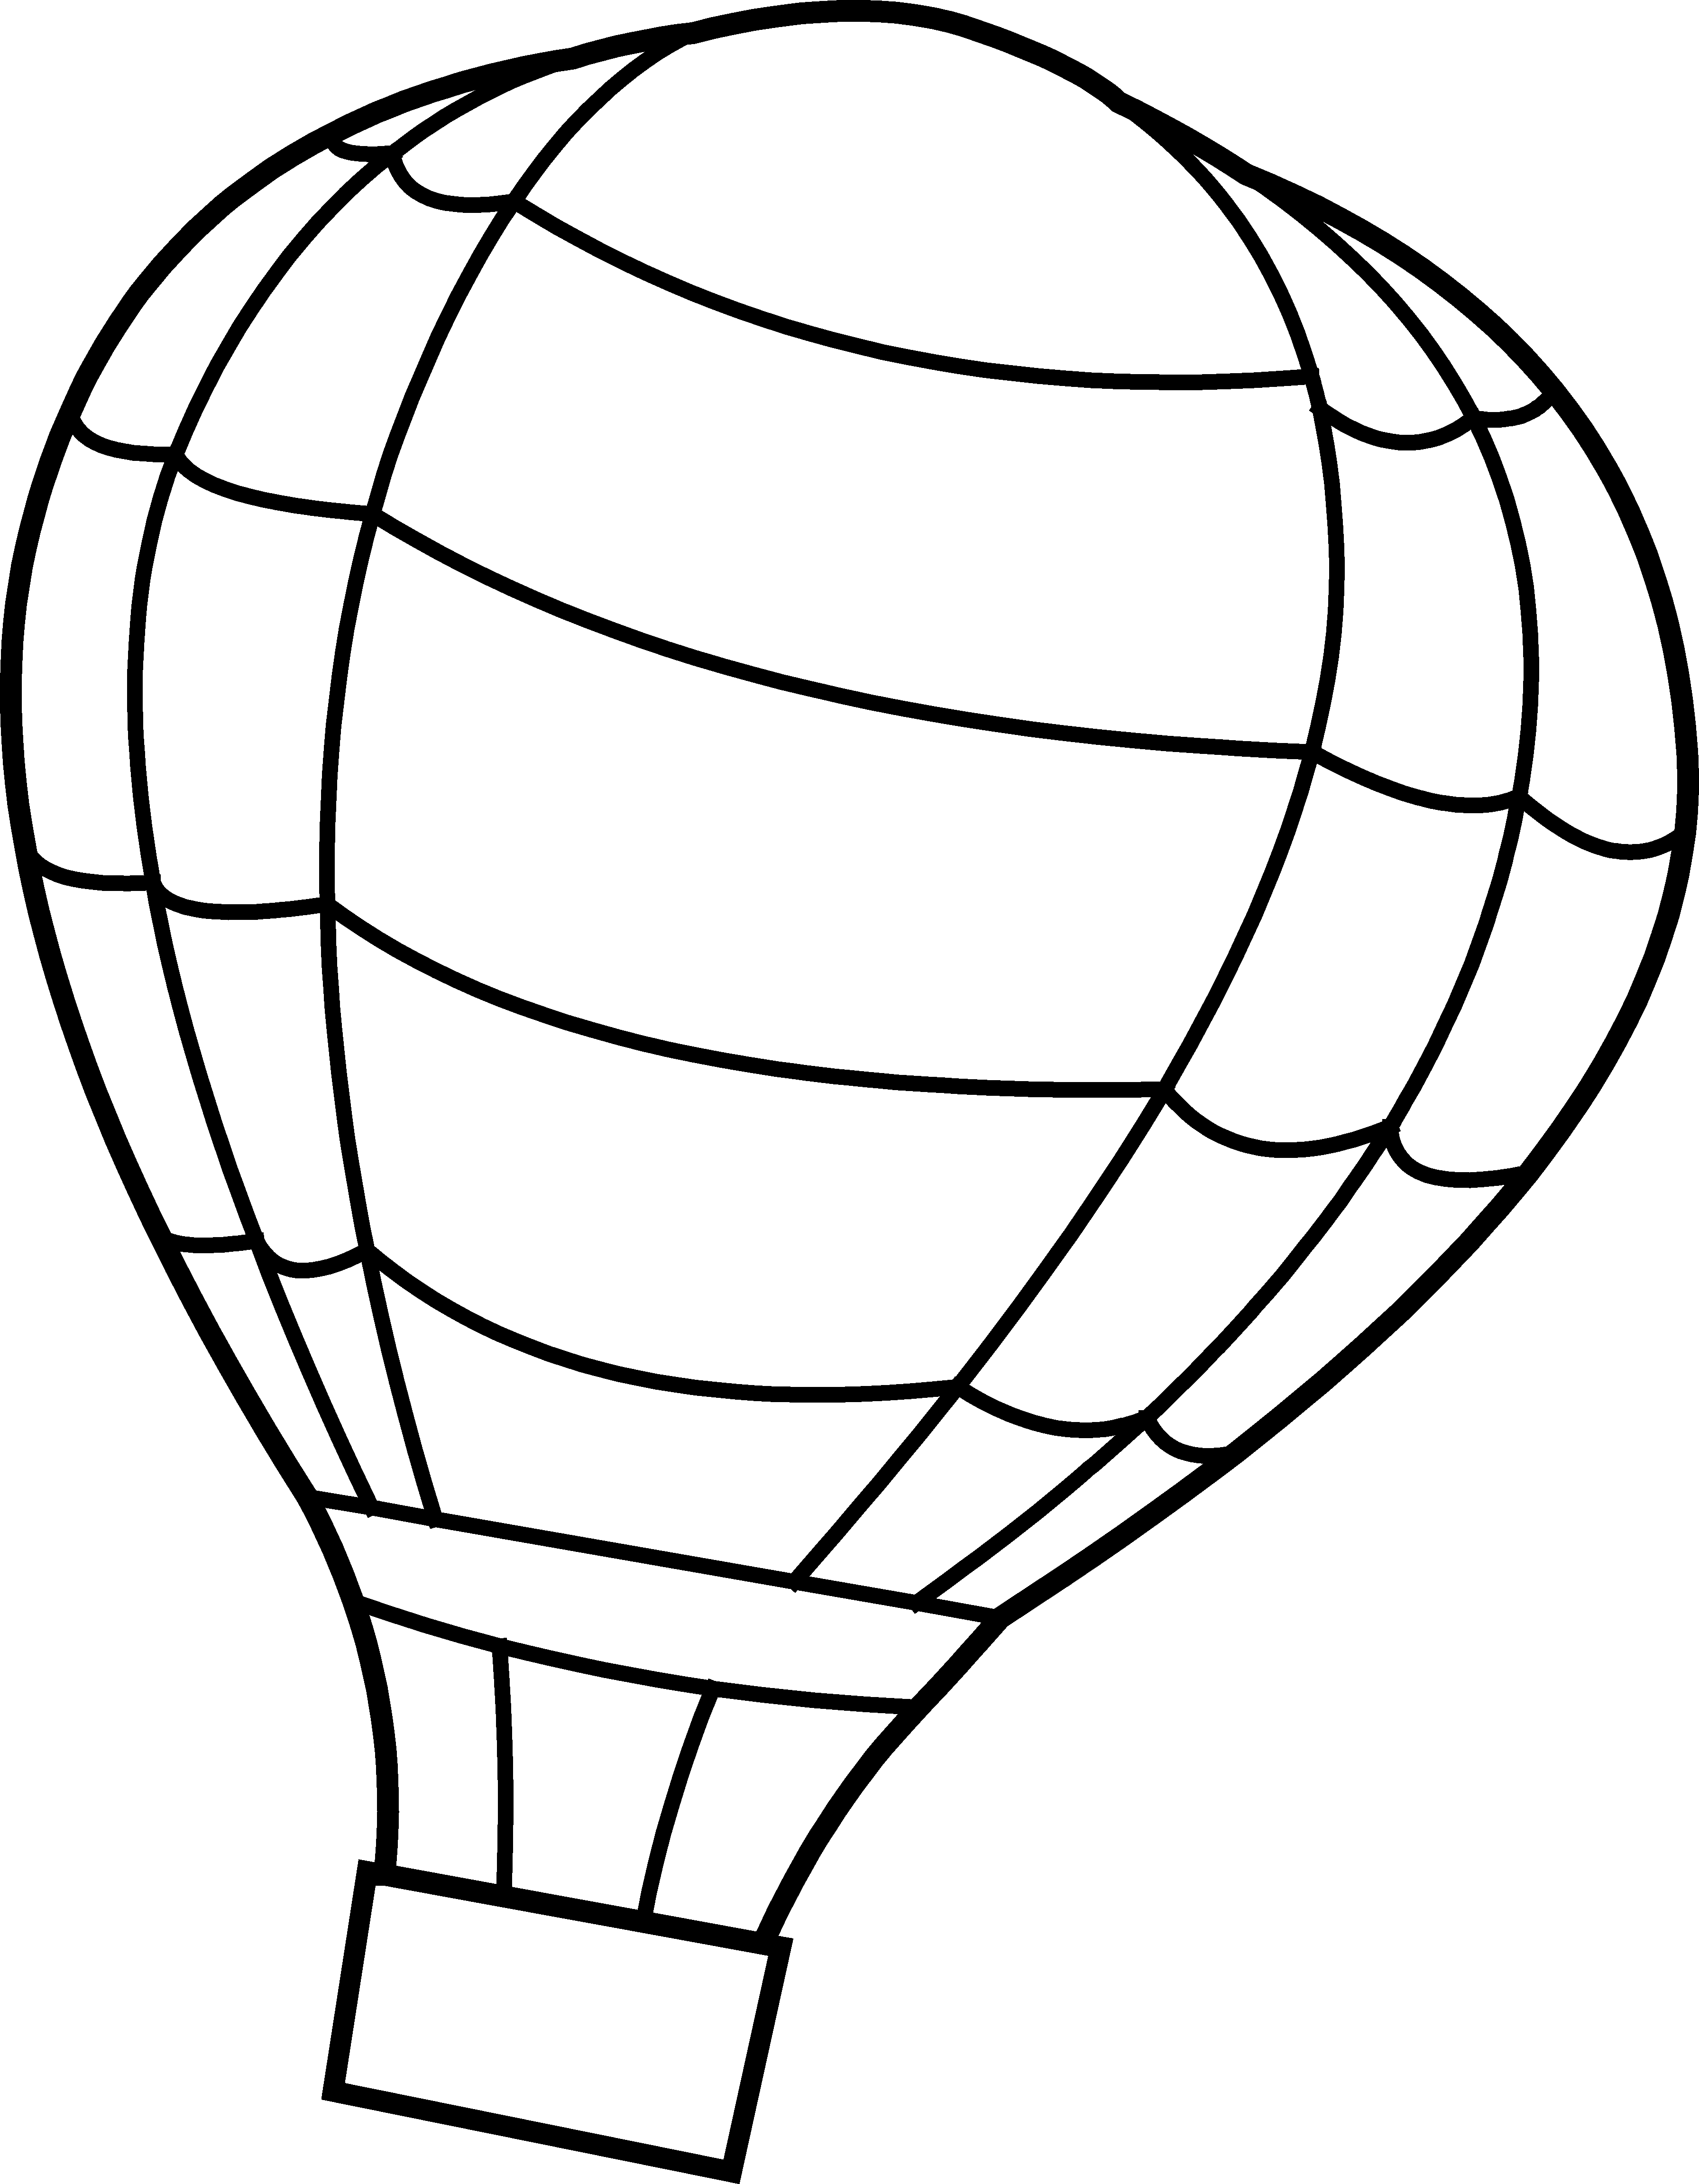 3583x4606 Hot Air Balloon Coloring Page